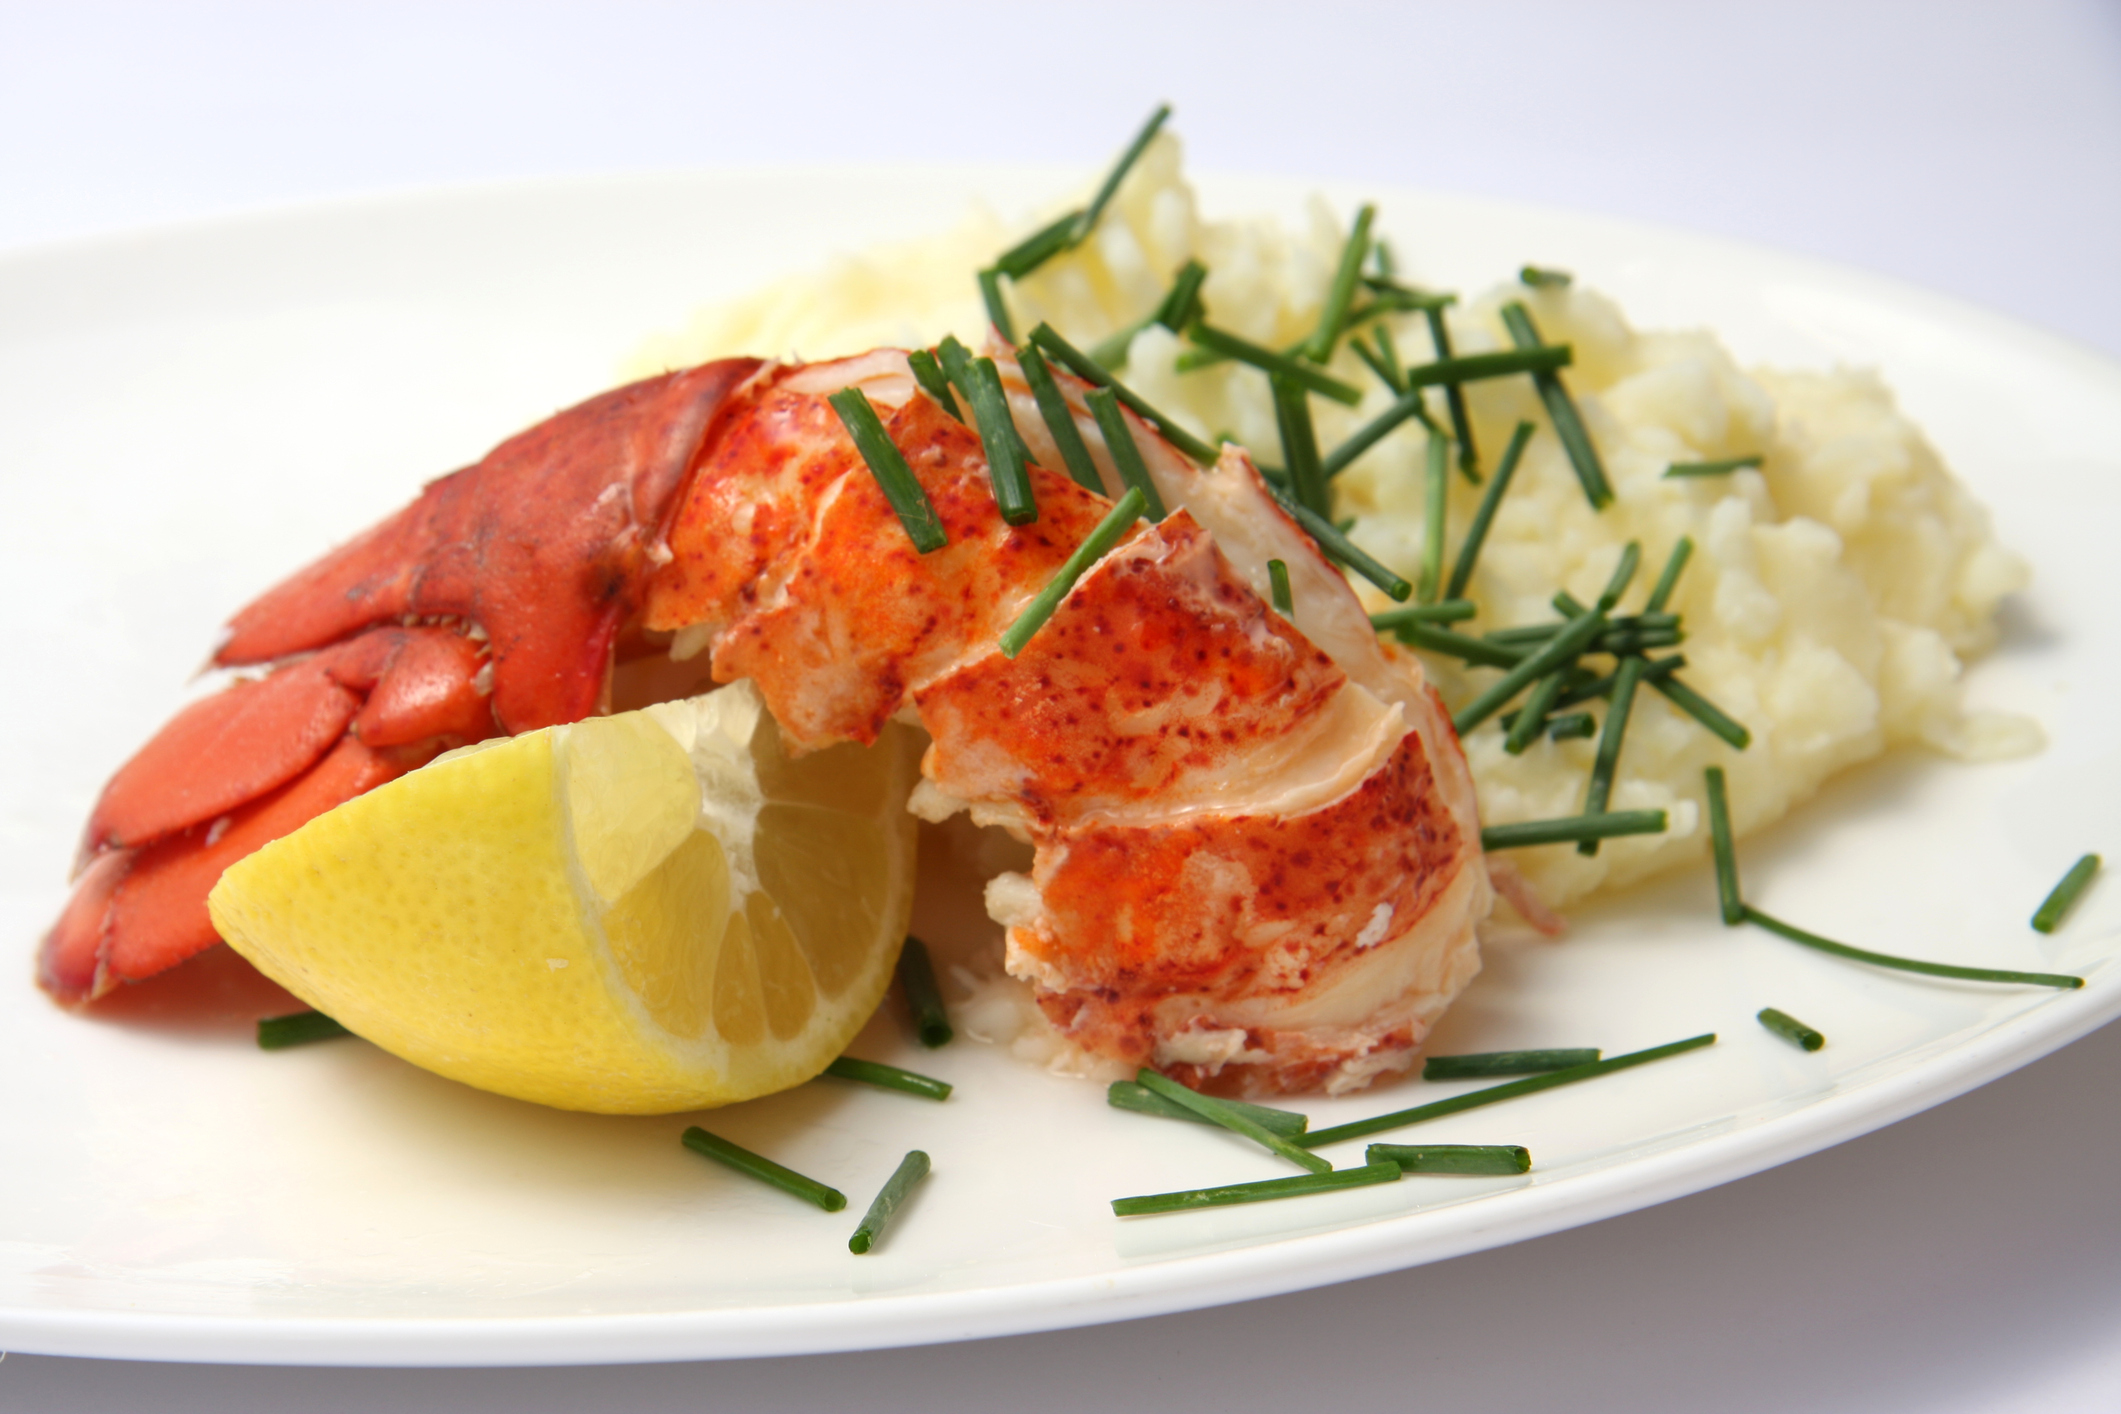 Boiled lobster with mashed potato served on a plate.